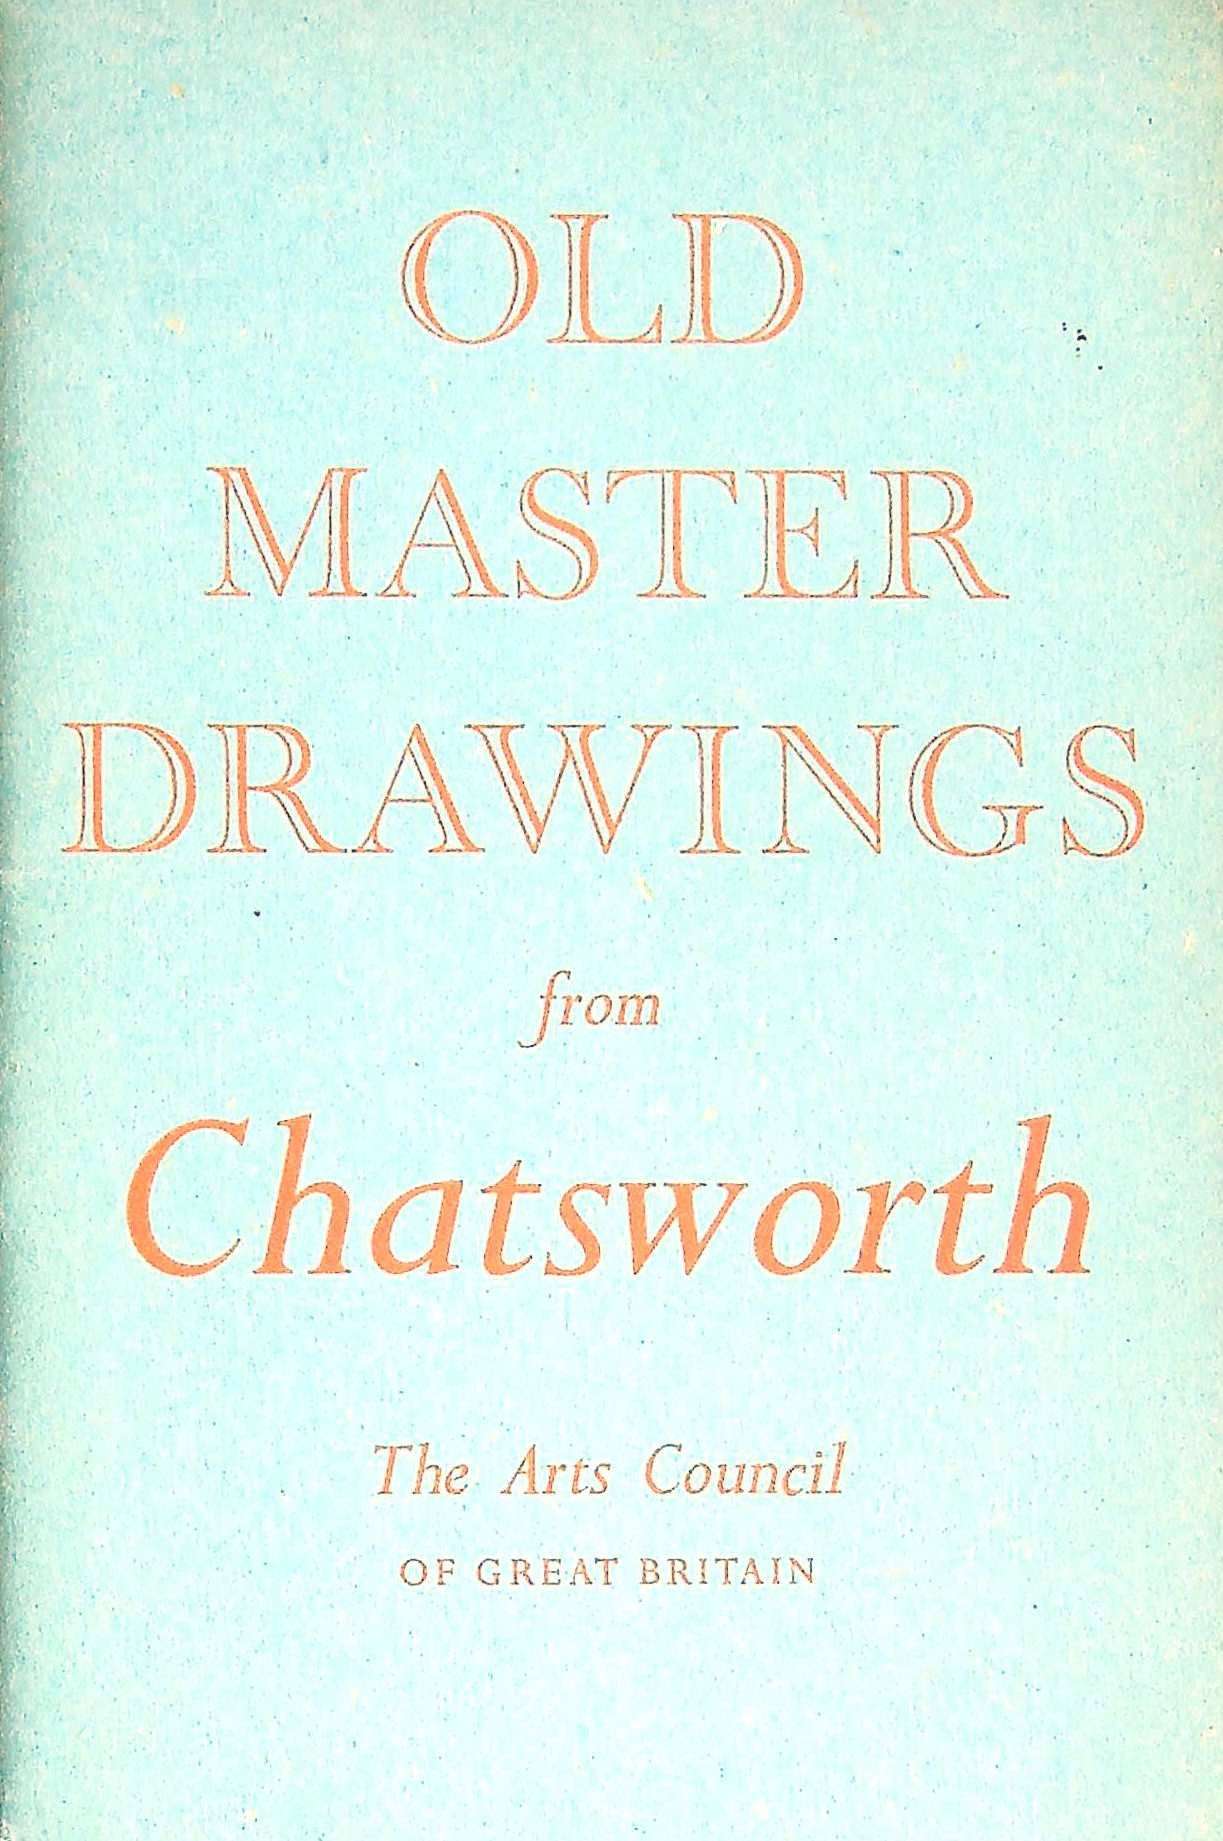 Image for Old Master Drawings from Chatsworth. An exhibition catalogue